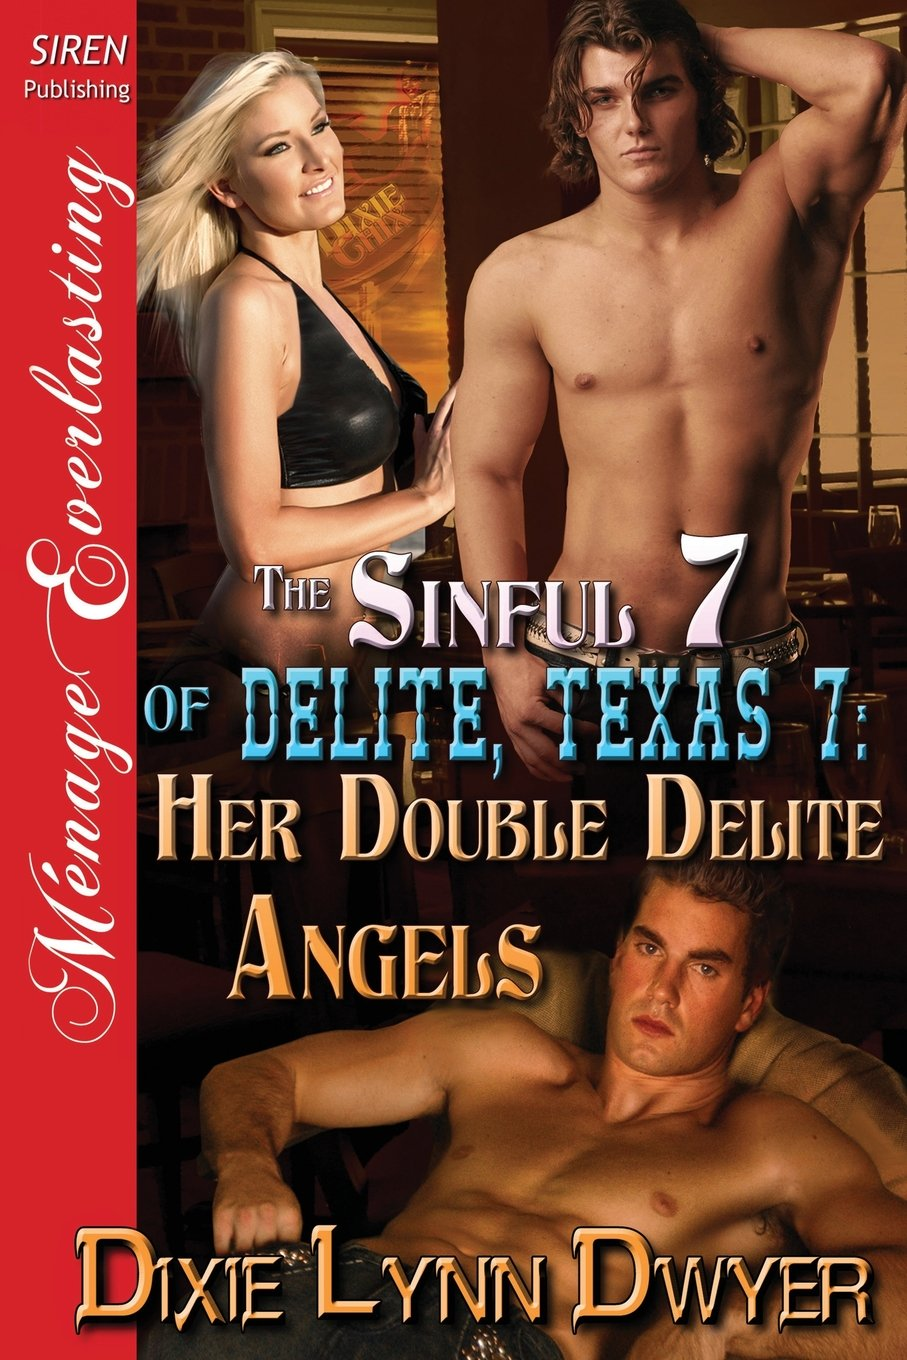 The Sinful 7 of Delite, Texas 7: Her Double Delite Angels (Siren Publishing Menage Everlasting) pdf